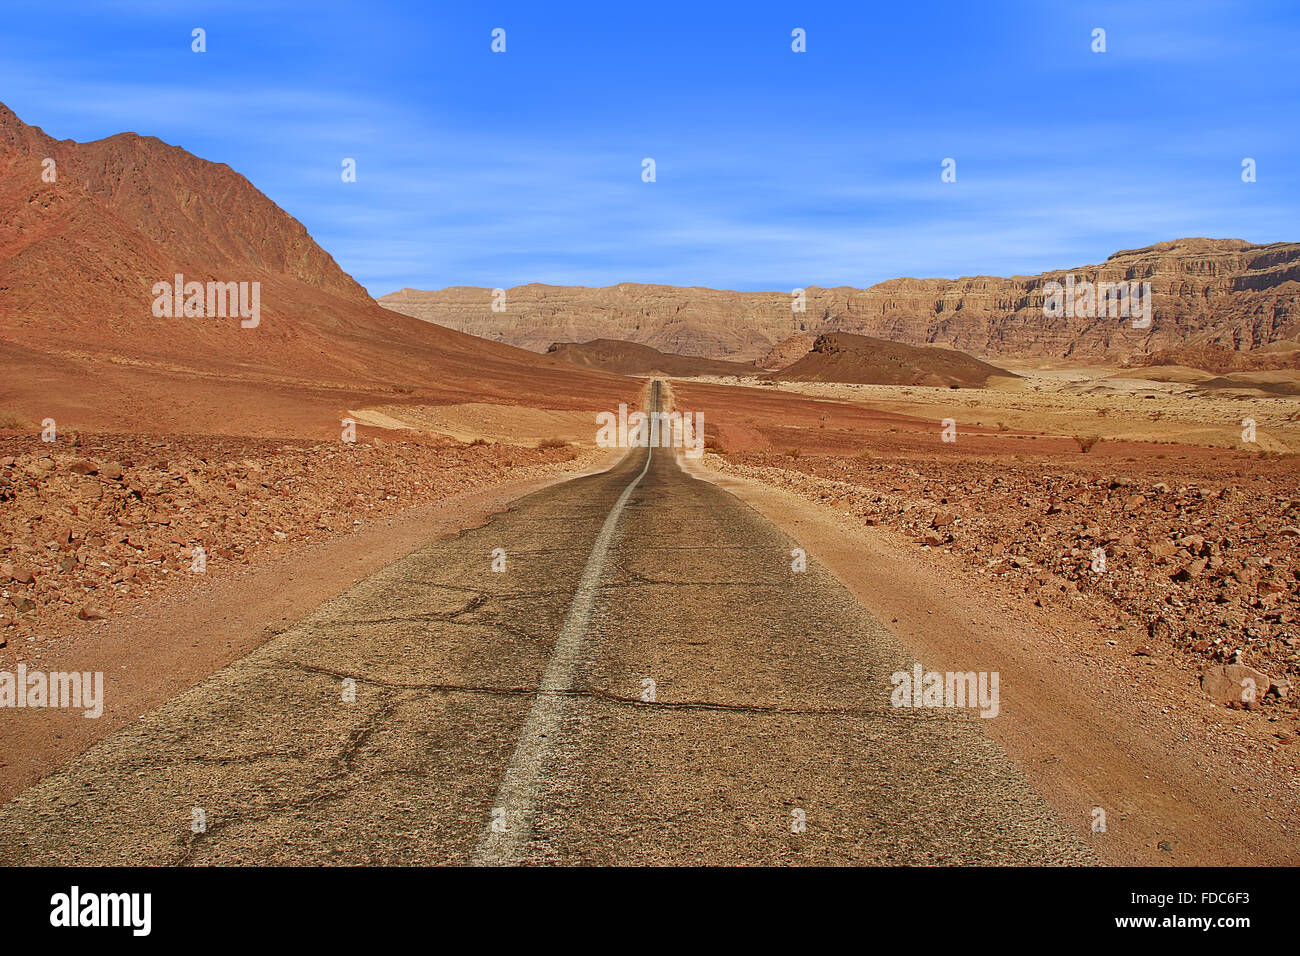 Paved road runs through Arava desert among red mountains in Timna national park, Israel. - Stock Image